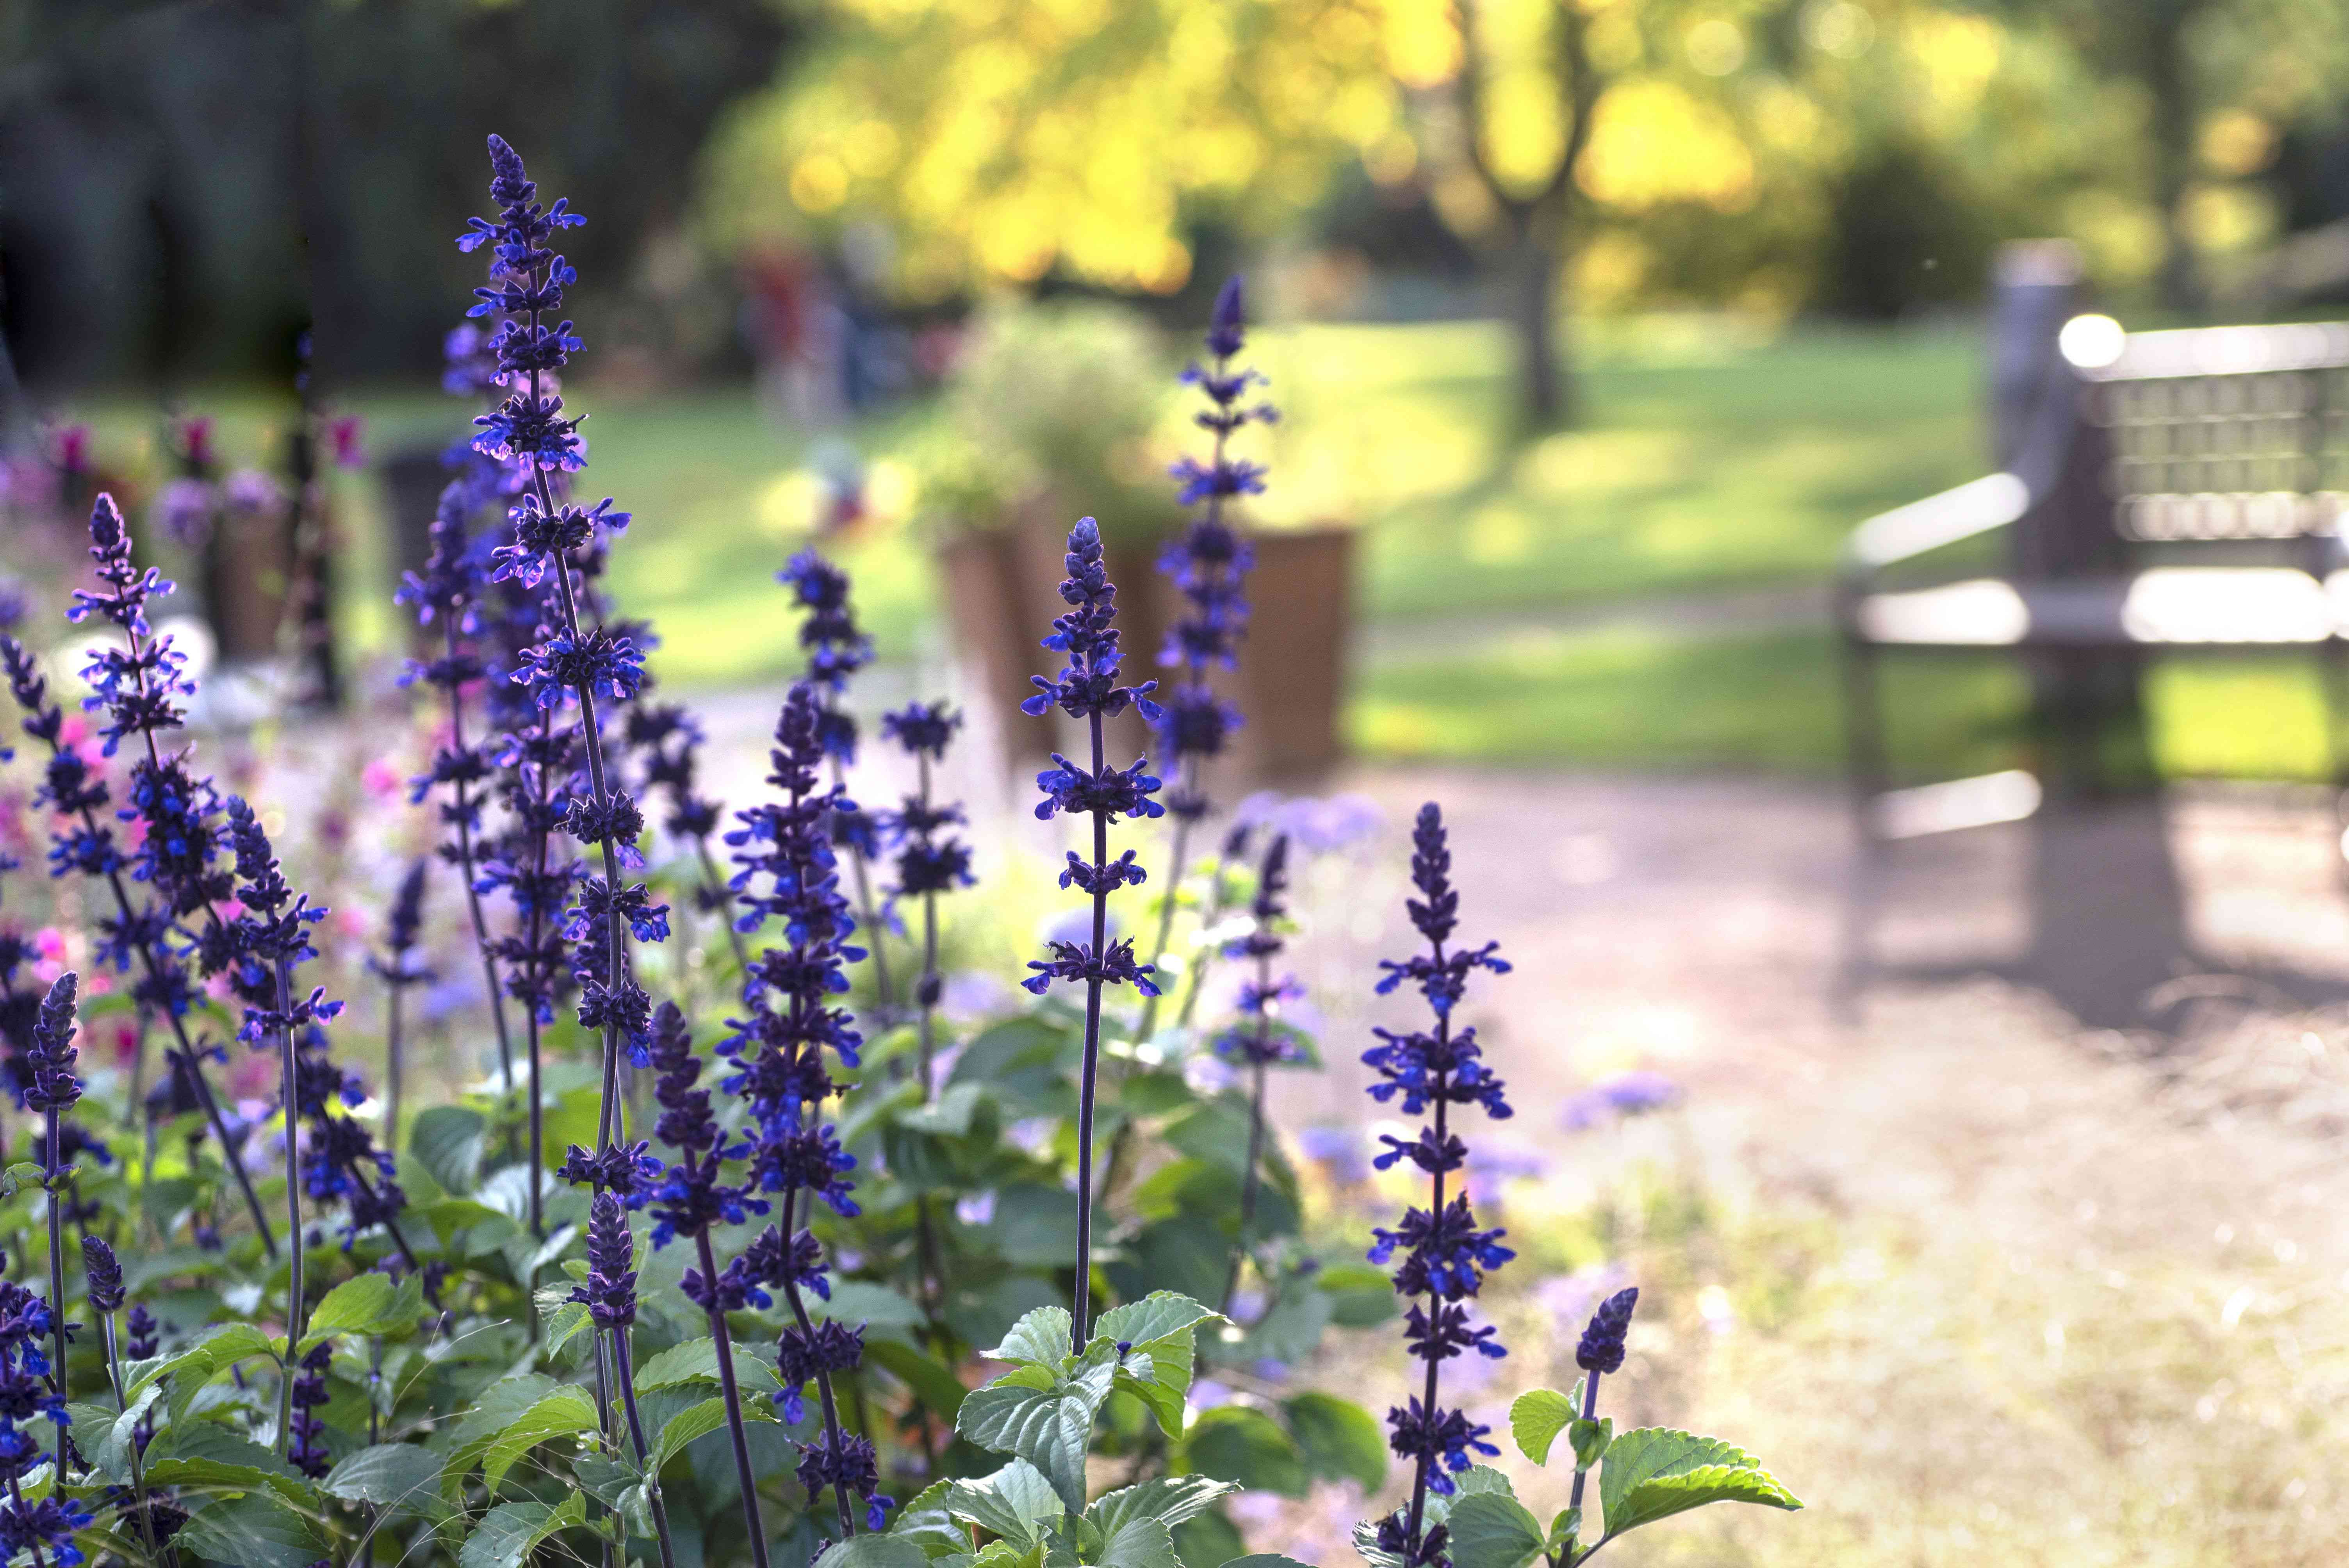 Victoria blue salvia with purple flowers and leaves next to park pathway and bench